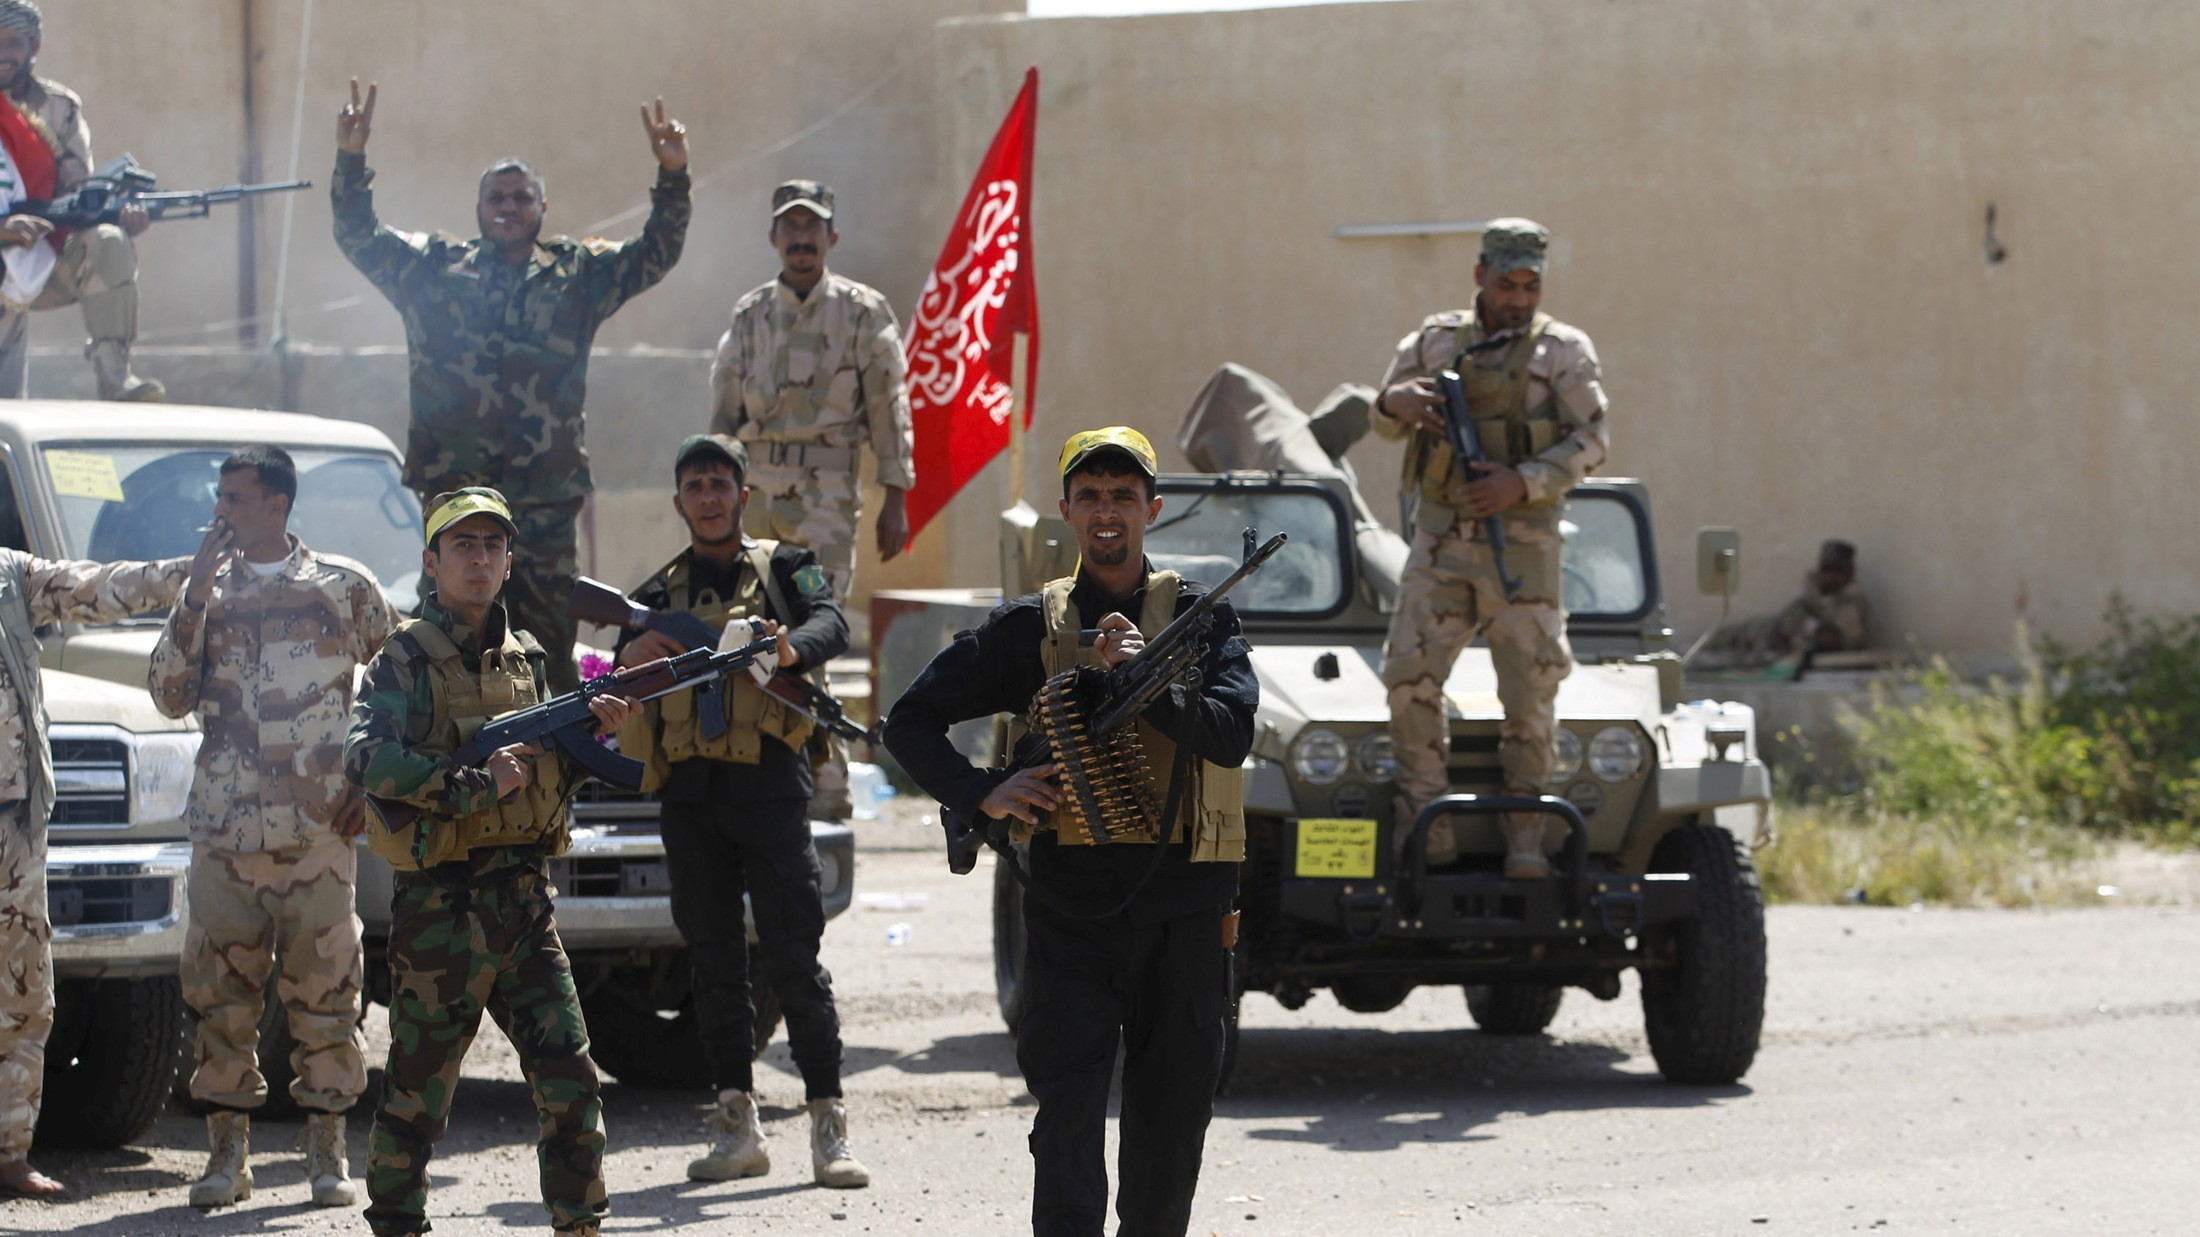 'Final Phase' of Tikrit Assault Begins Backed by US Airstrikes